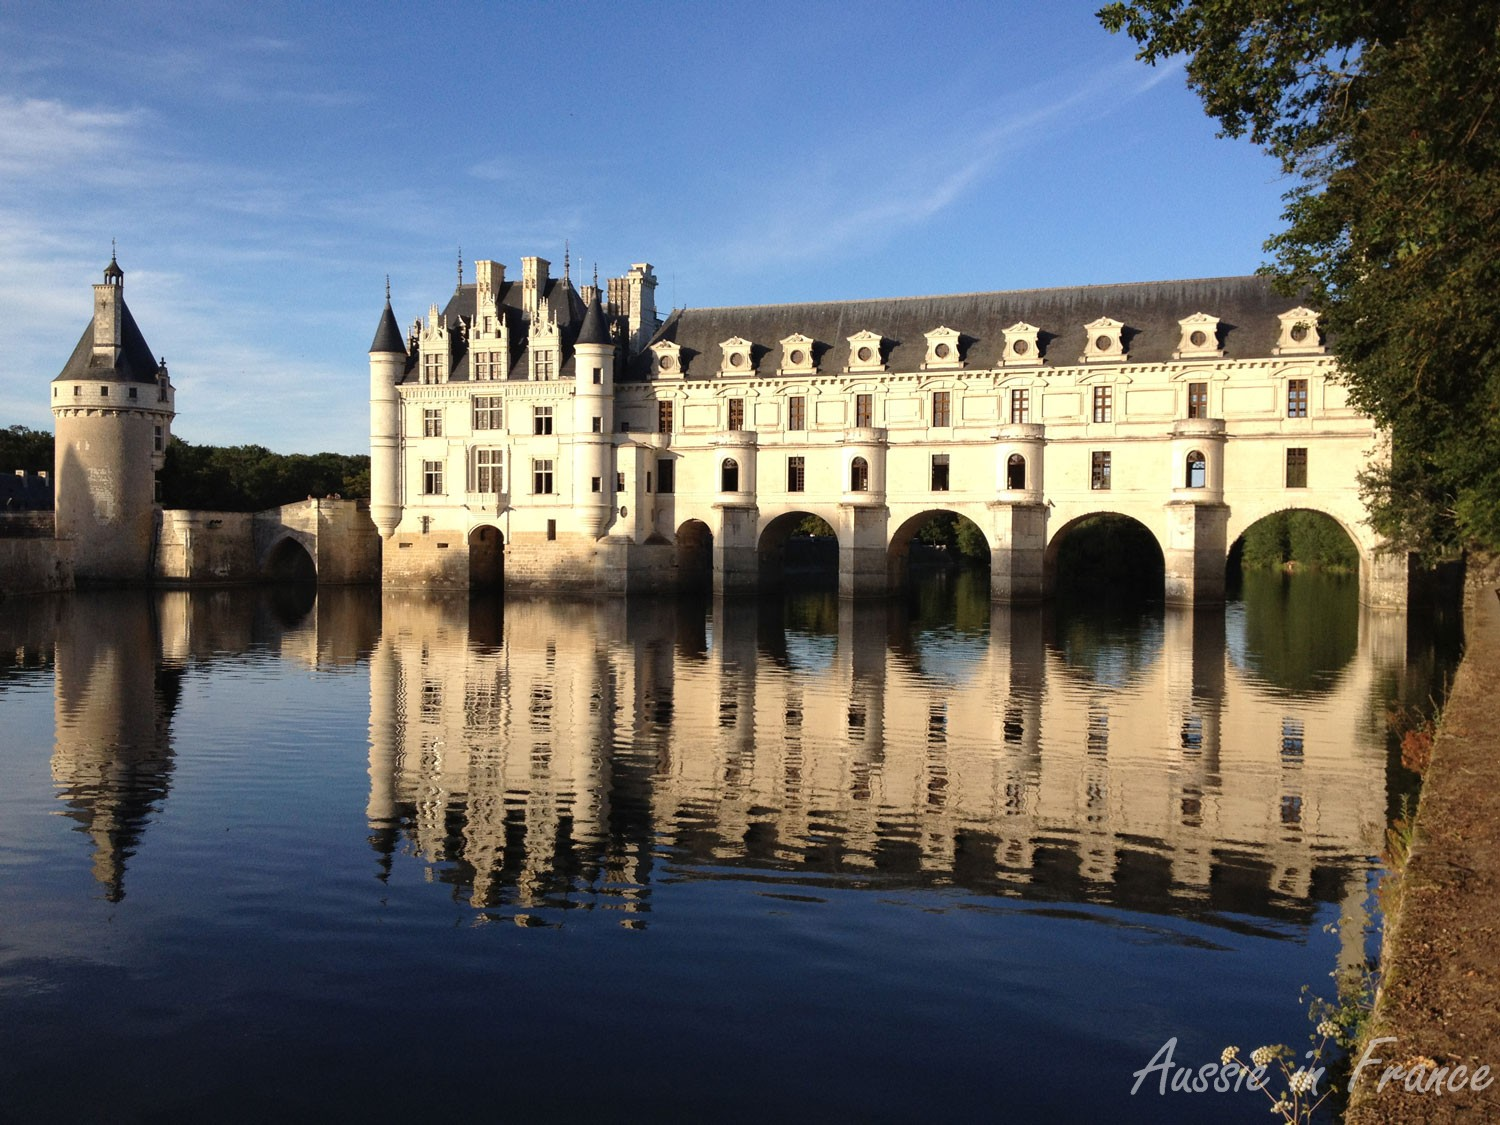 Chenonceau, undoubtedly the most beautiful of all the châteaux